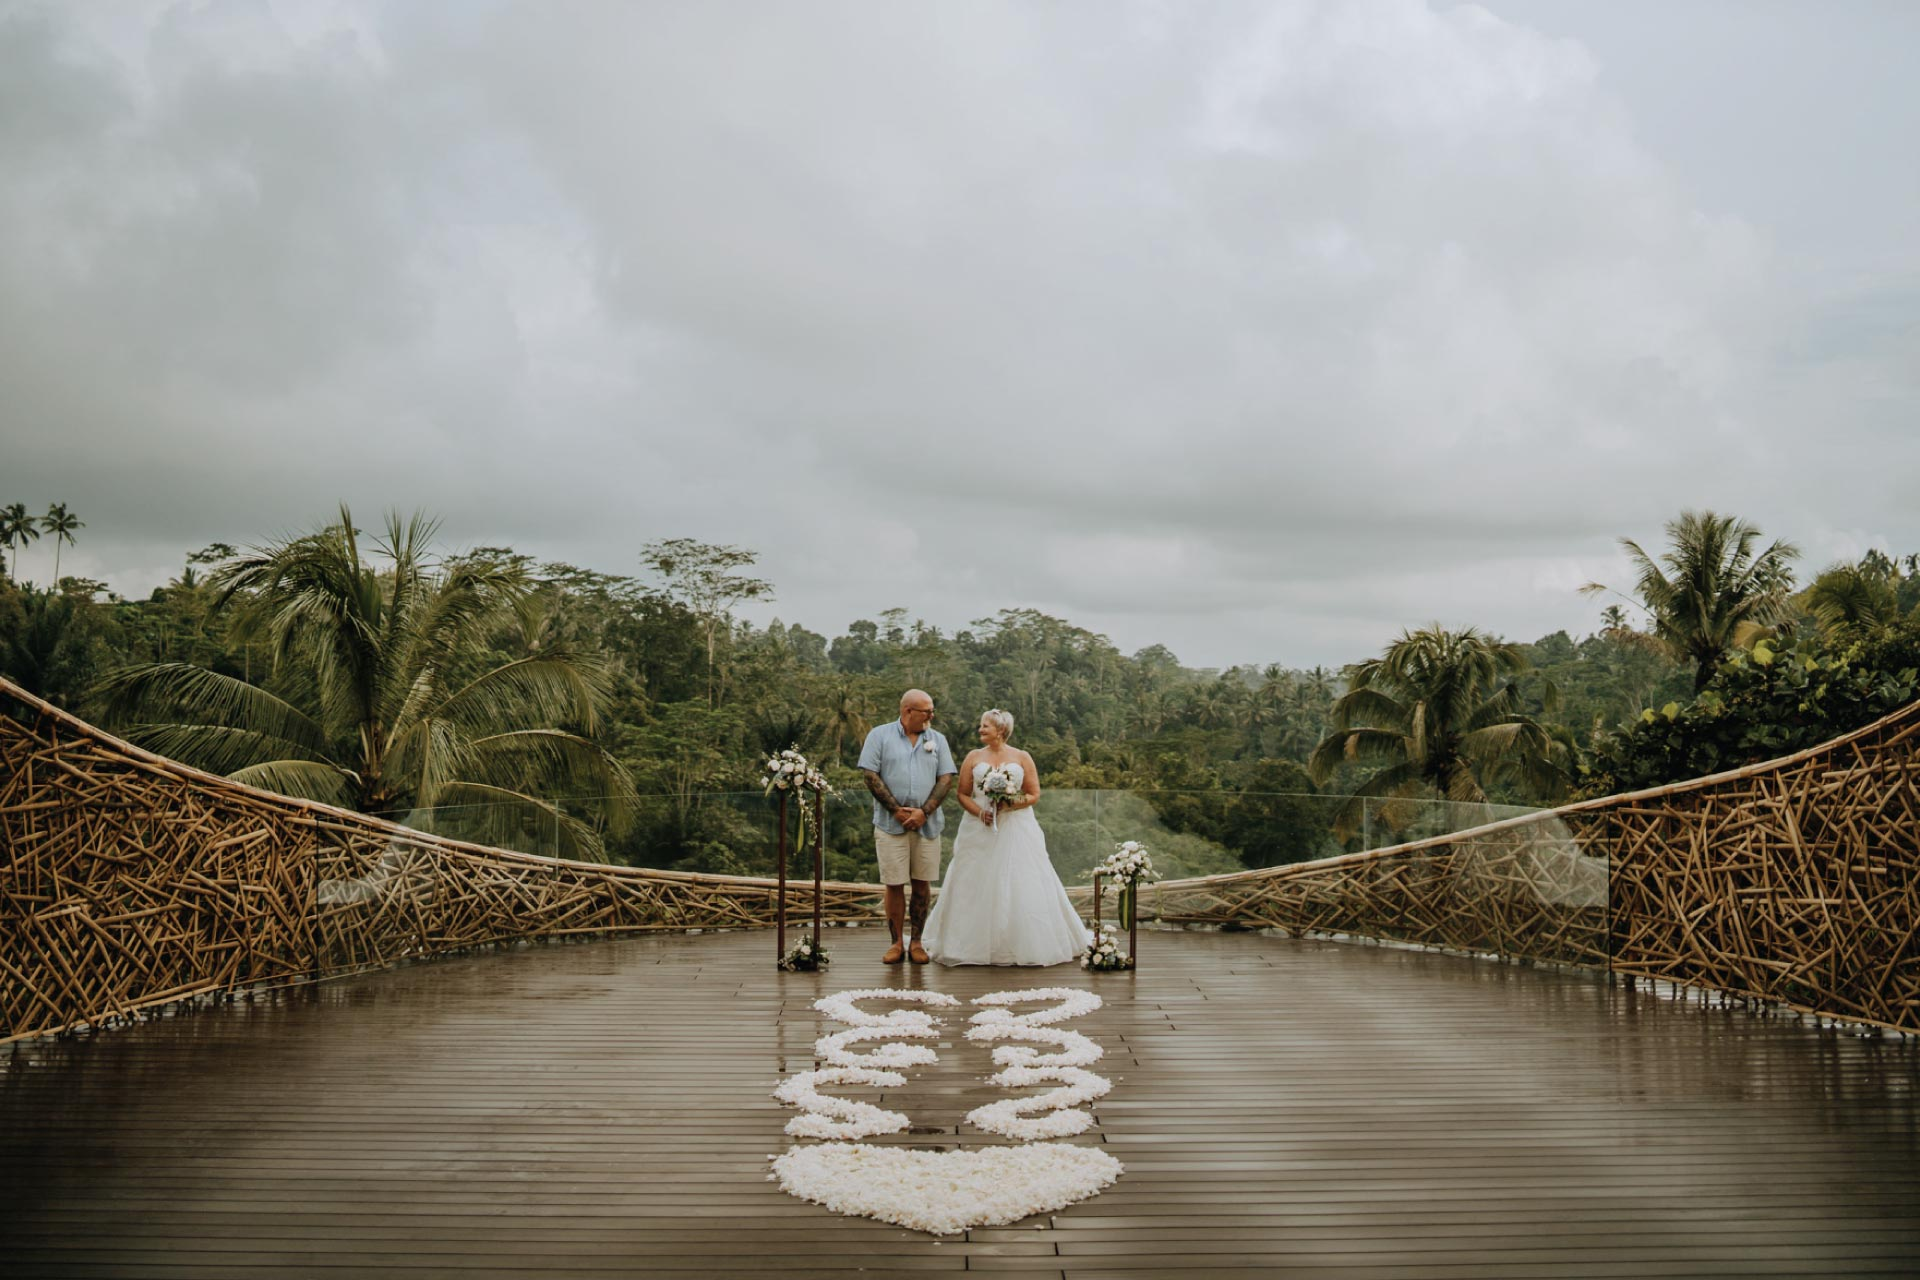 Wedding Venue Padma Resort Ubud